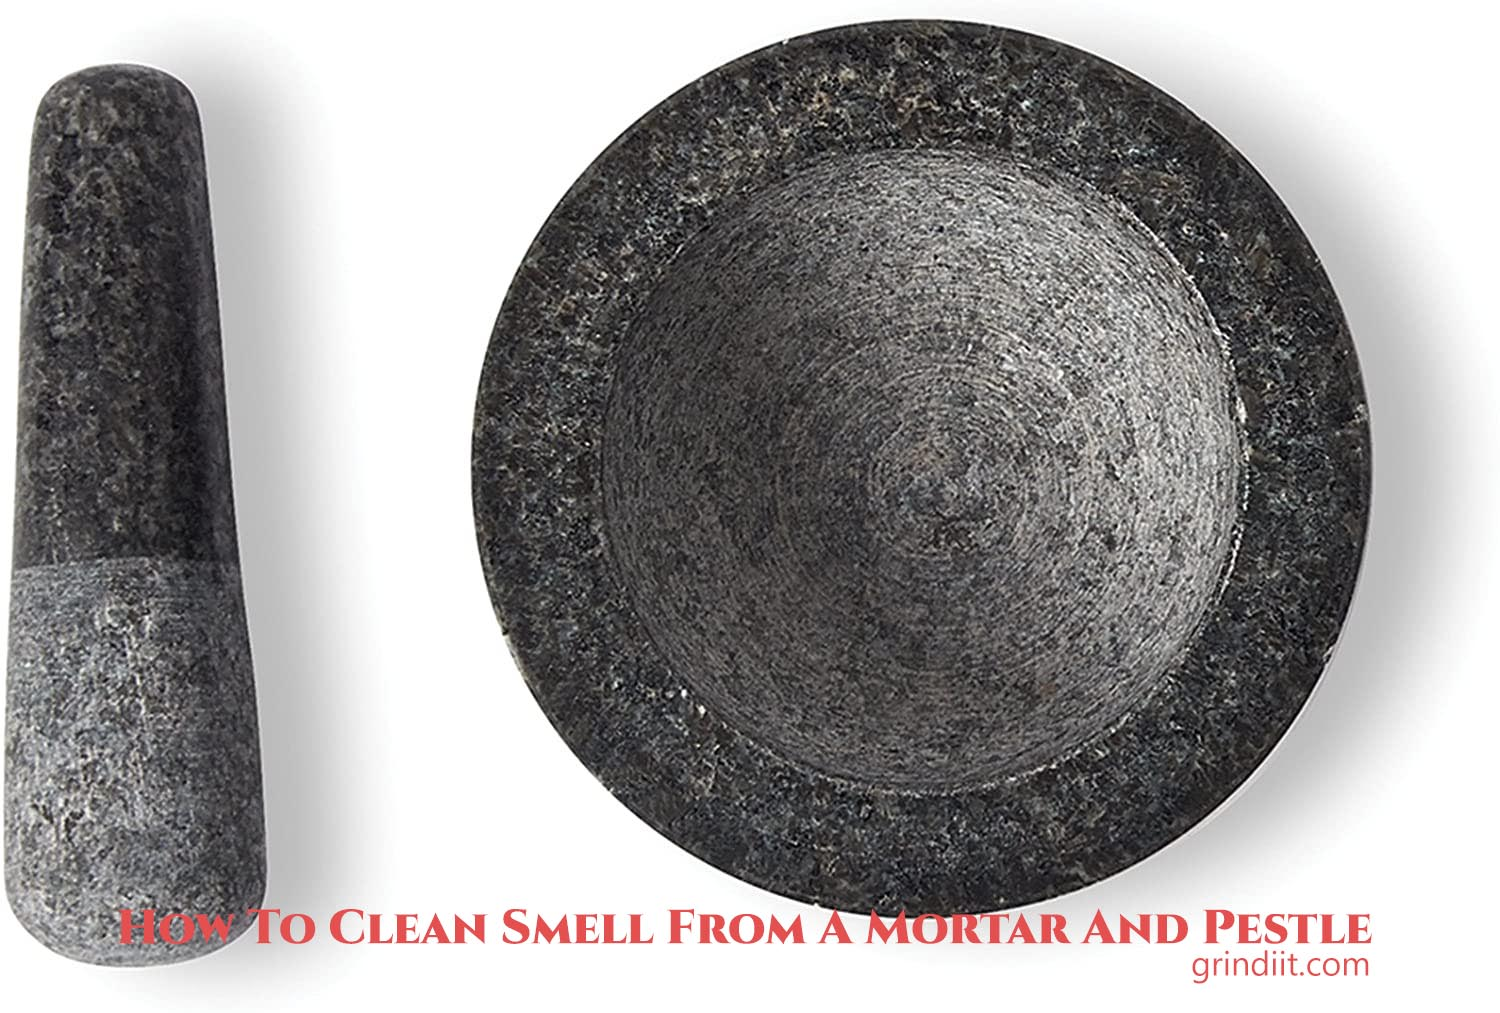 How To Clean Smell From A Mortar And Pestle